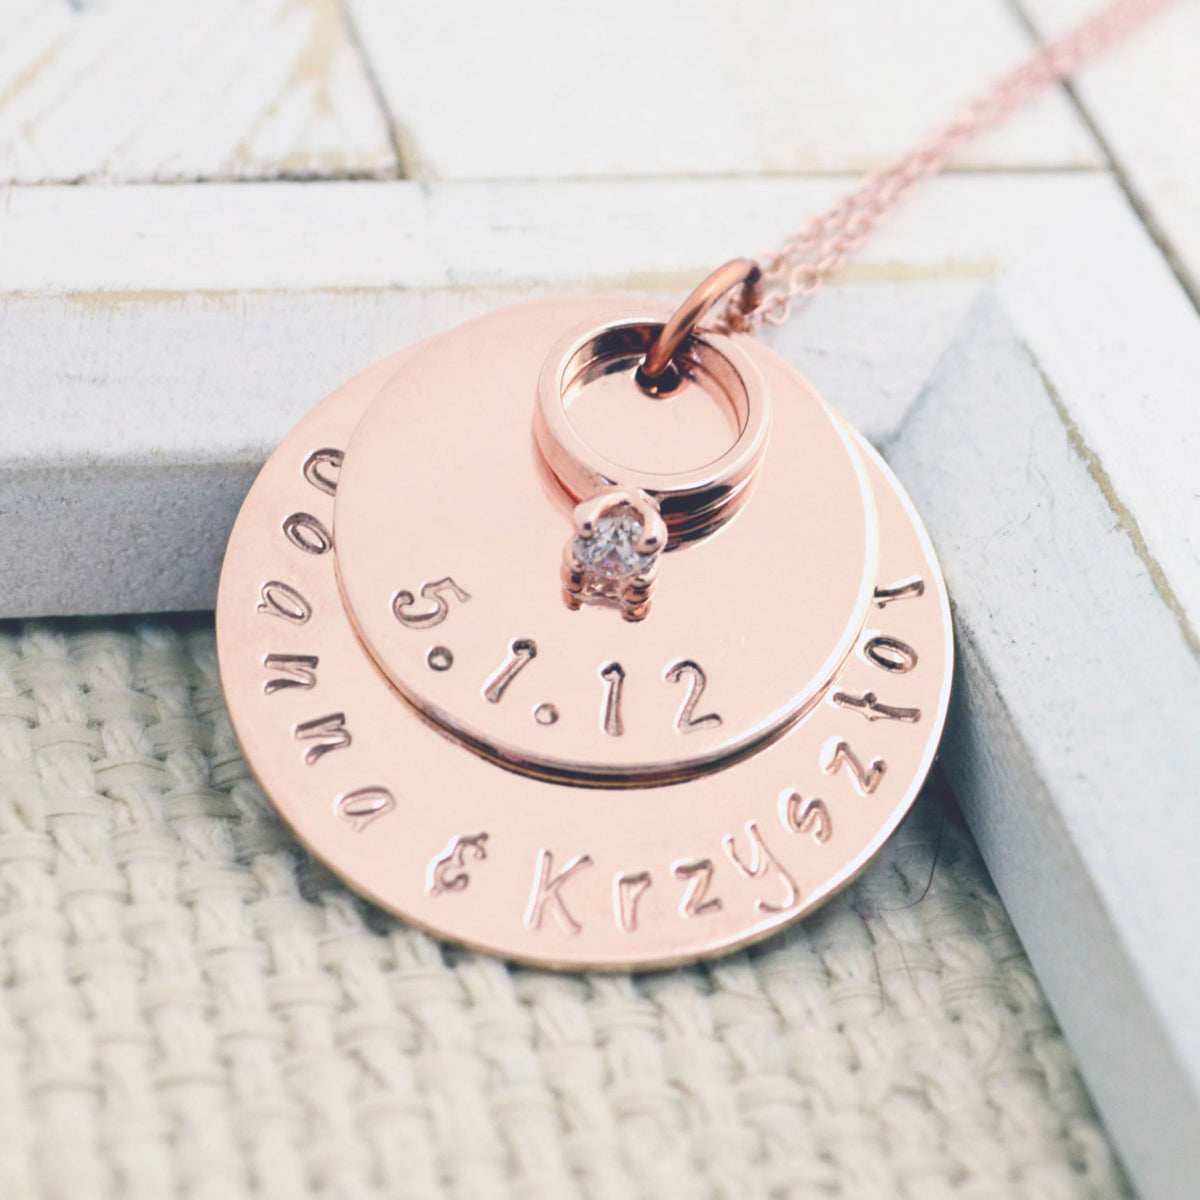 Rose Gold Wedding Ring Necklace - Love It Personalized